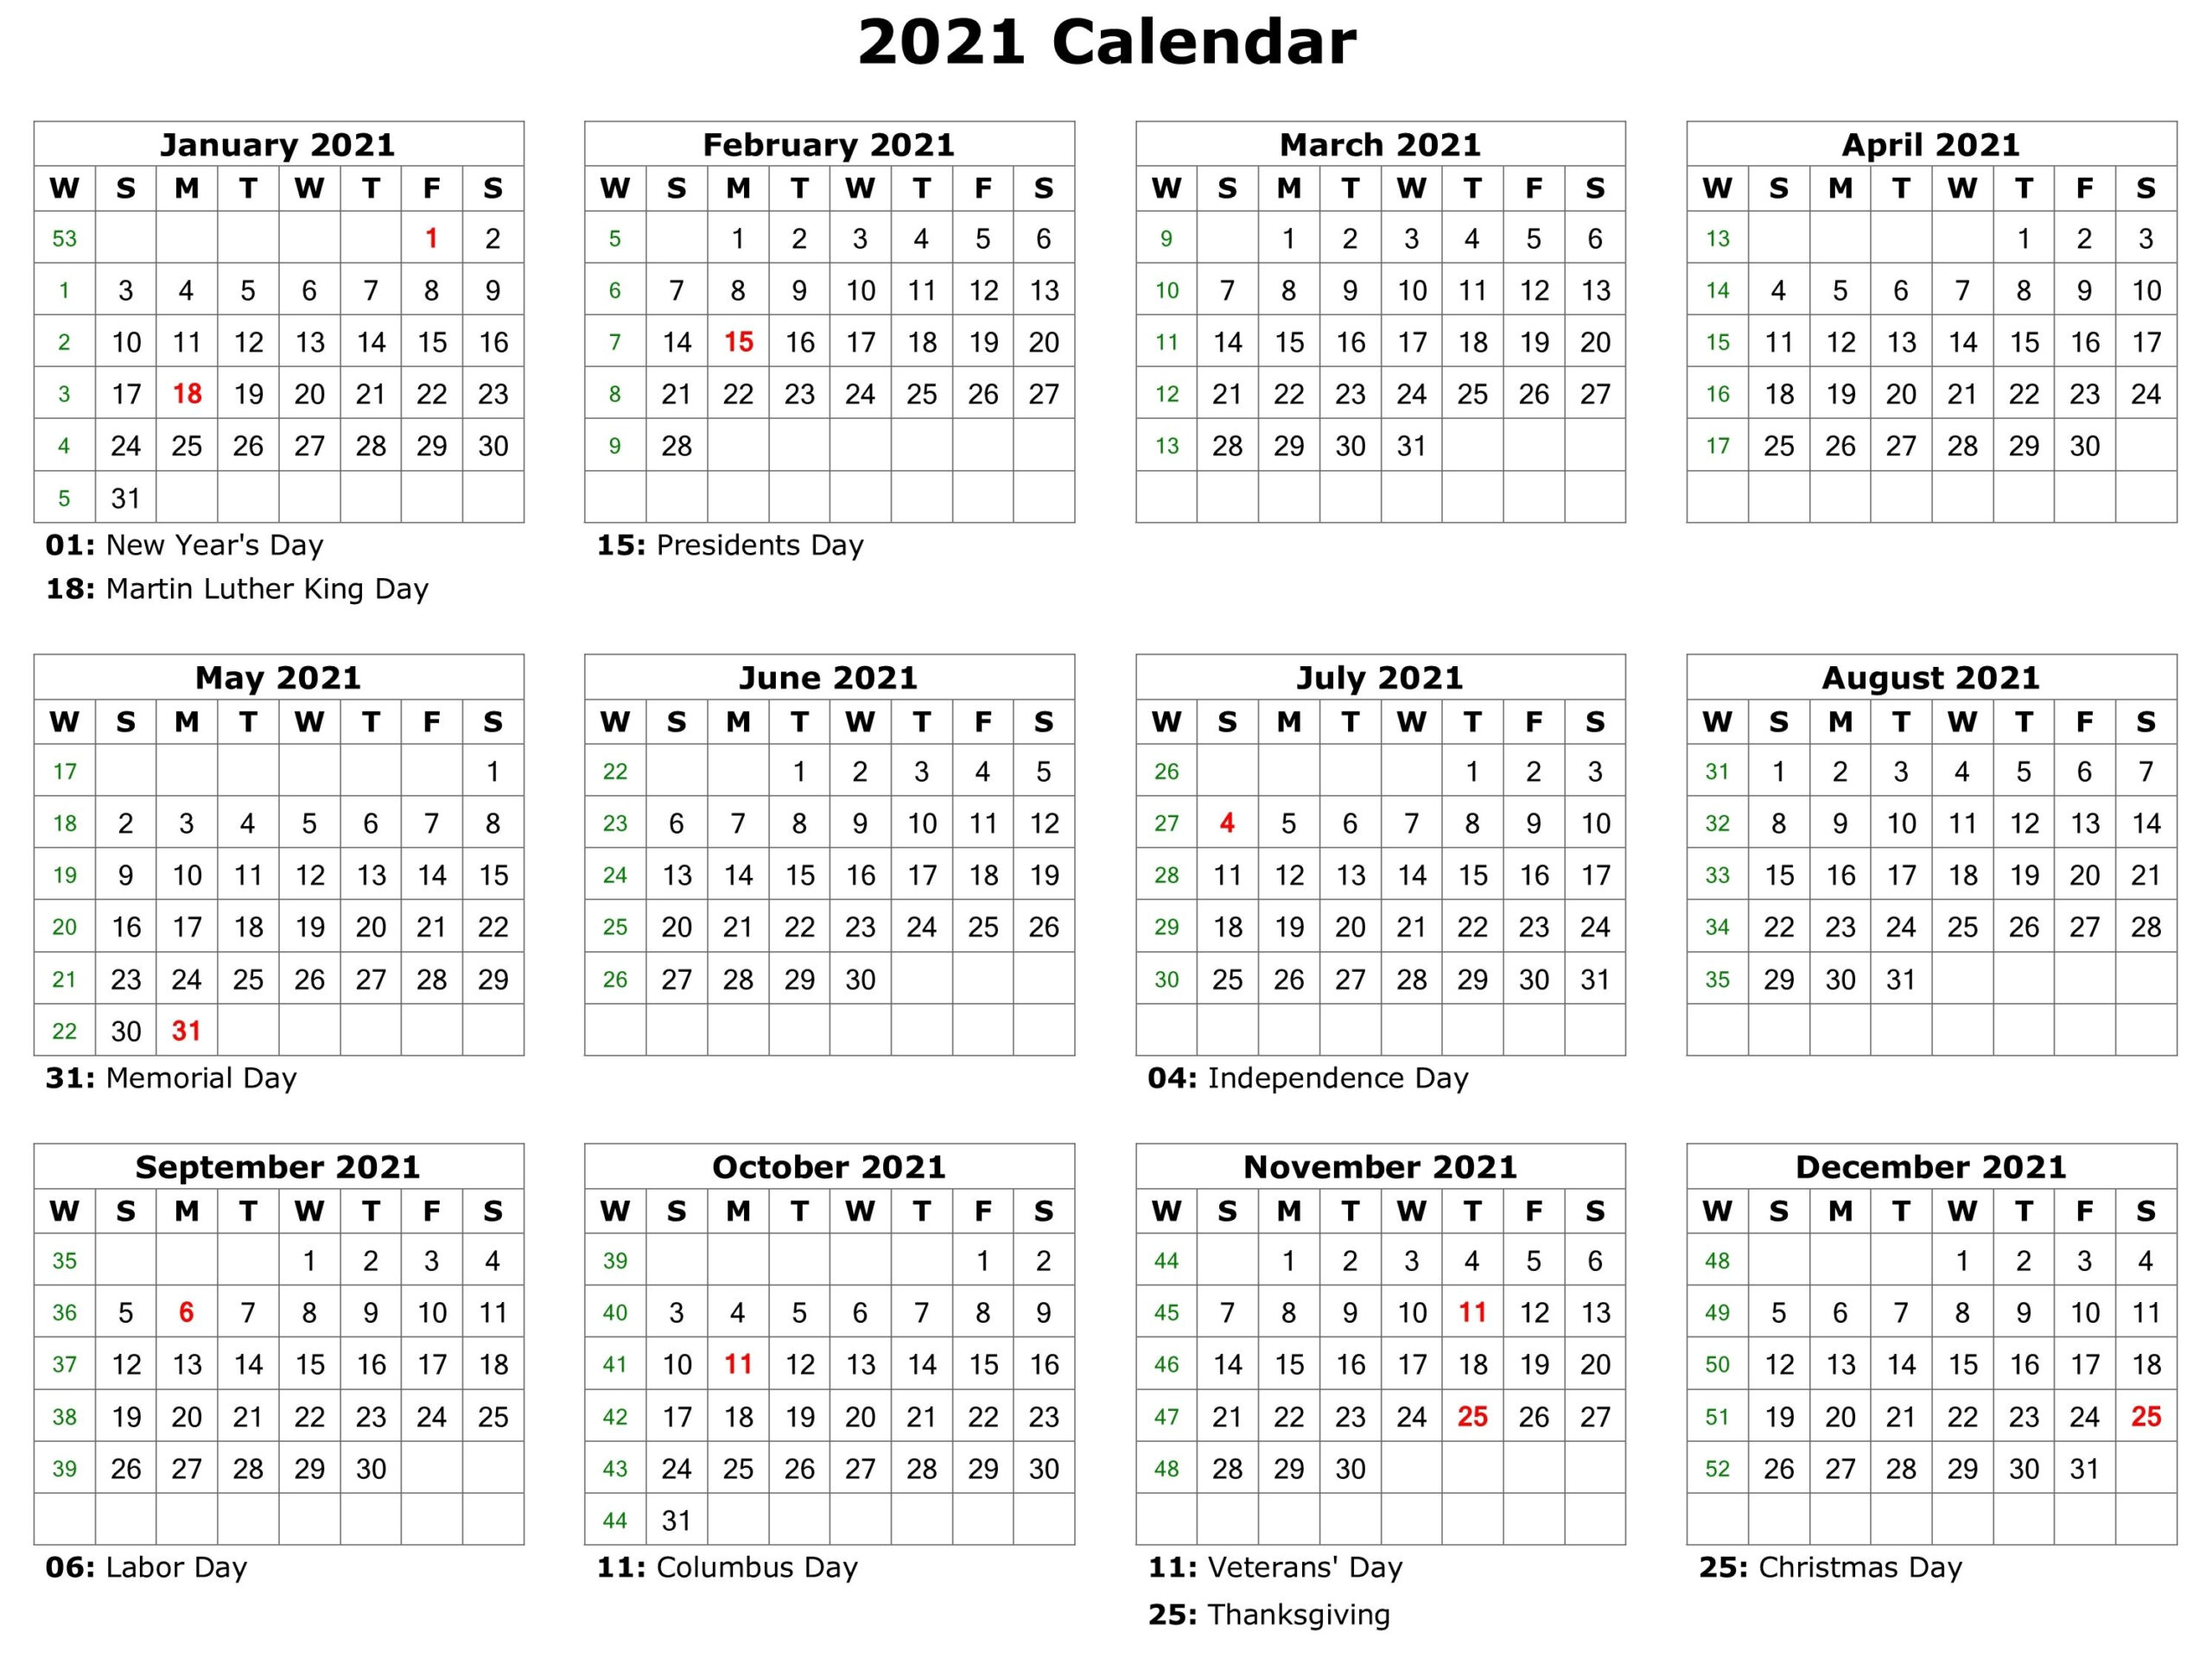 2021 Holidays - Free Download Printable Calendar Templates